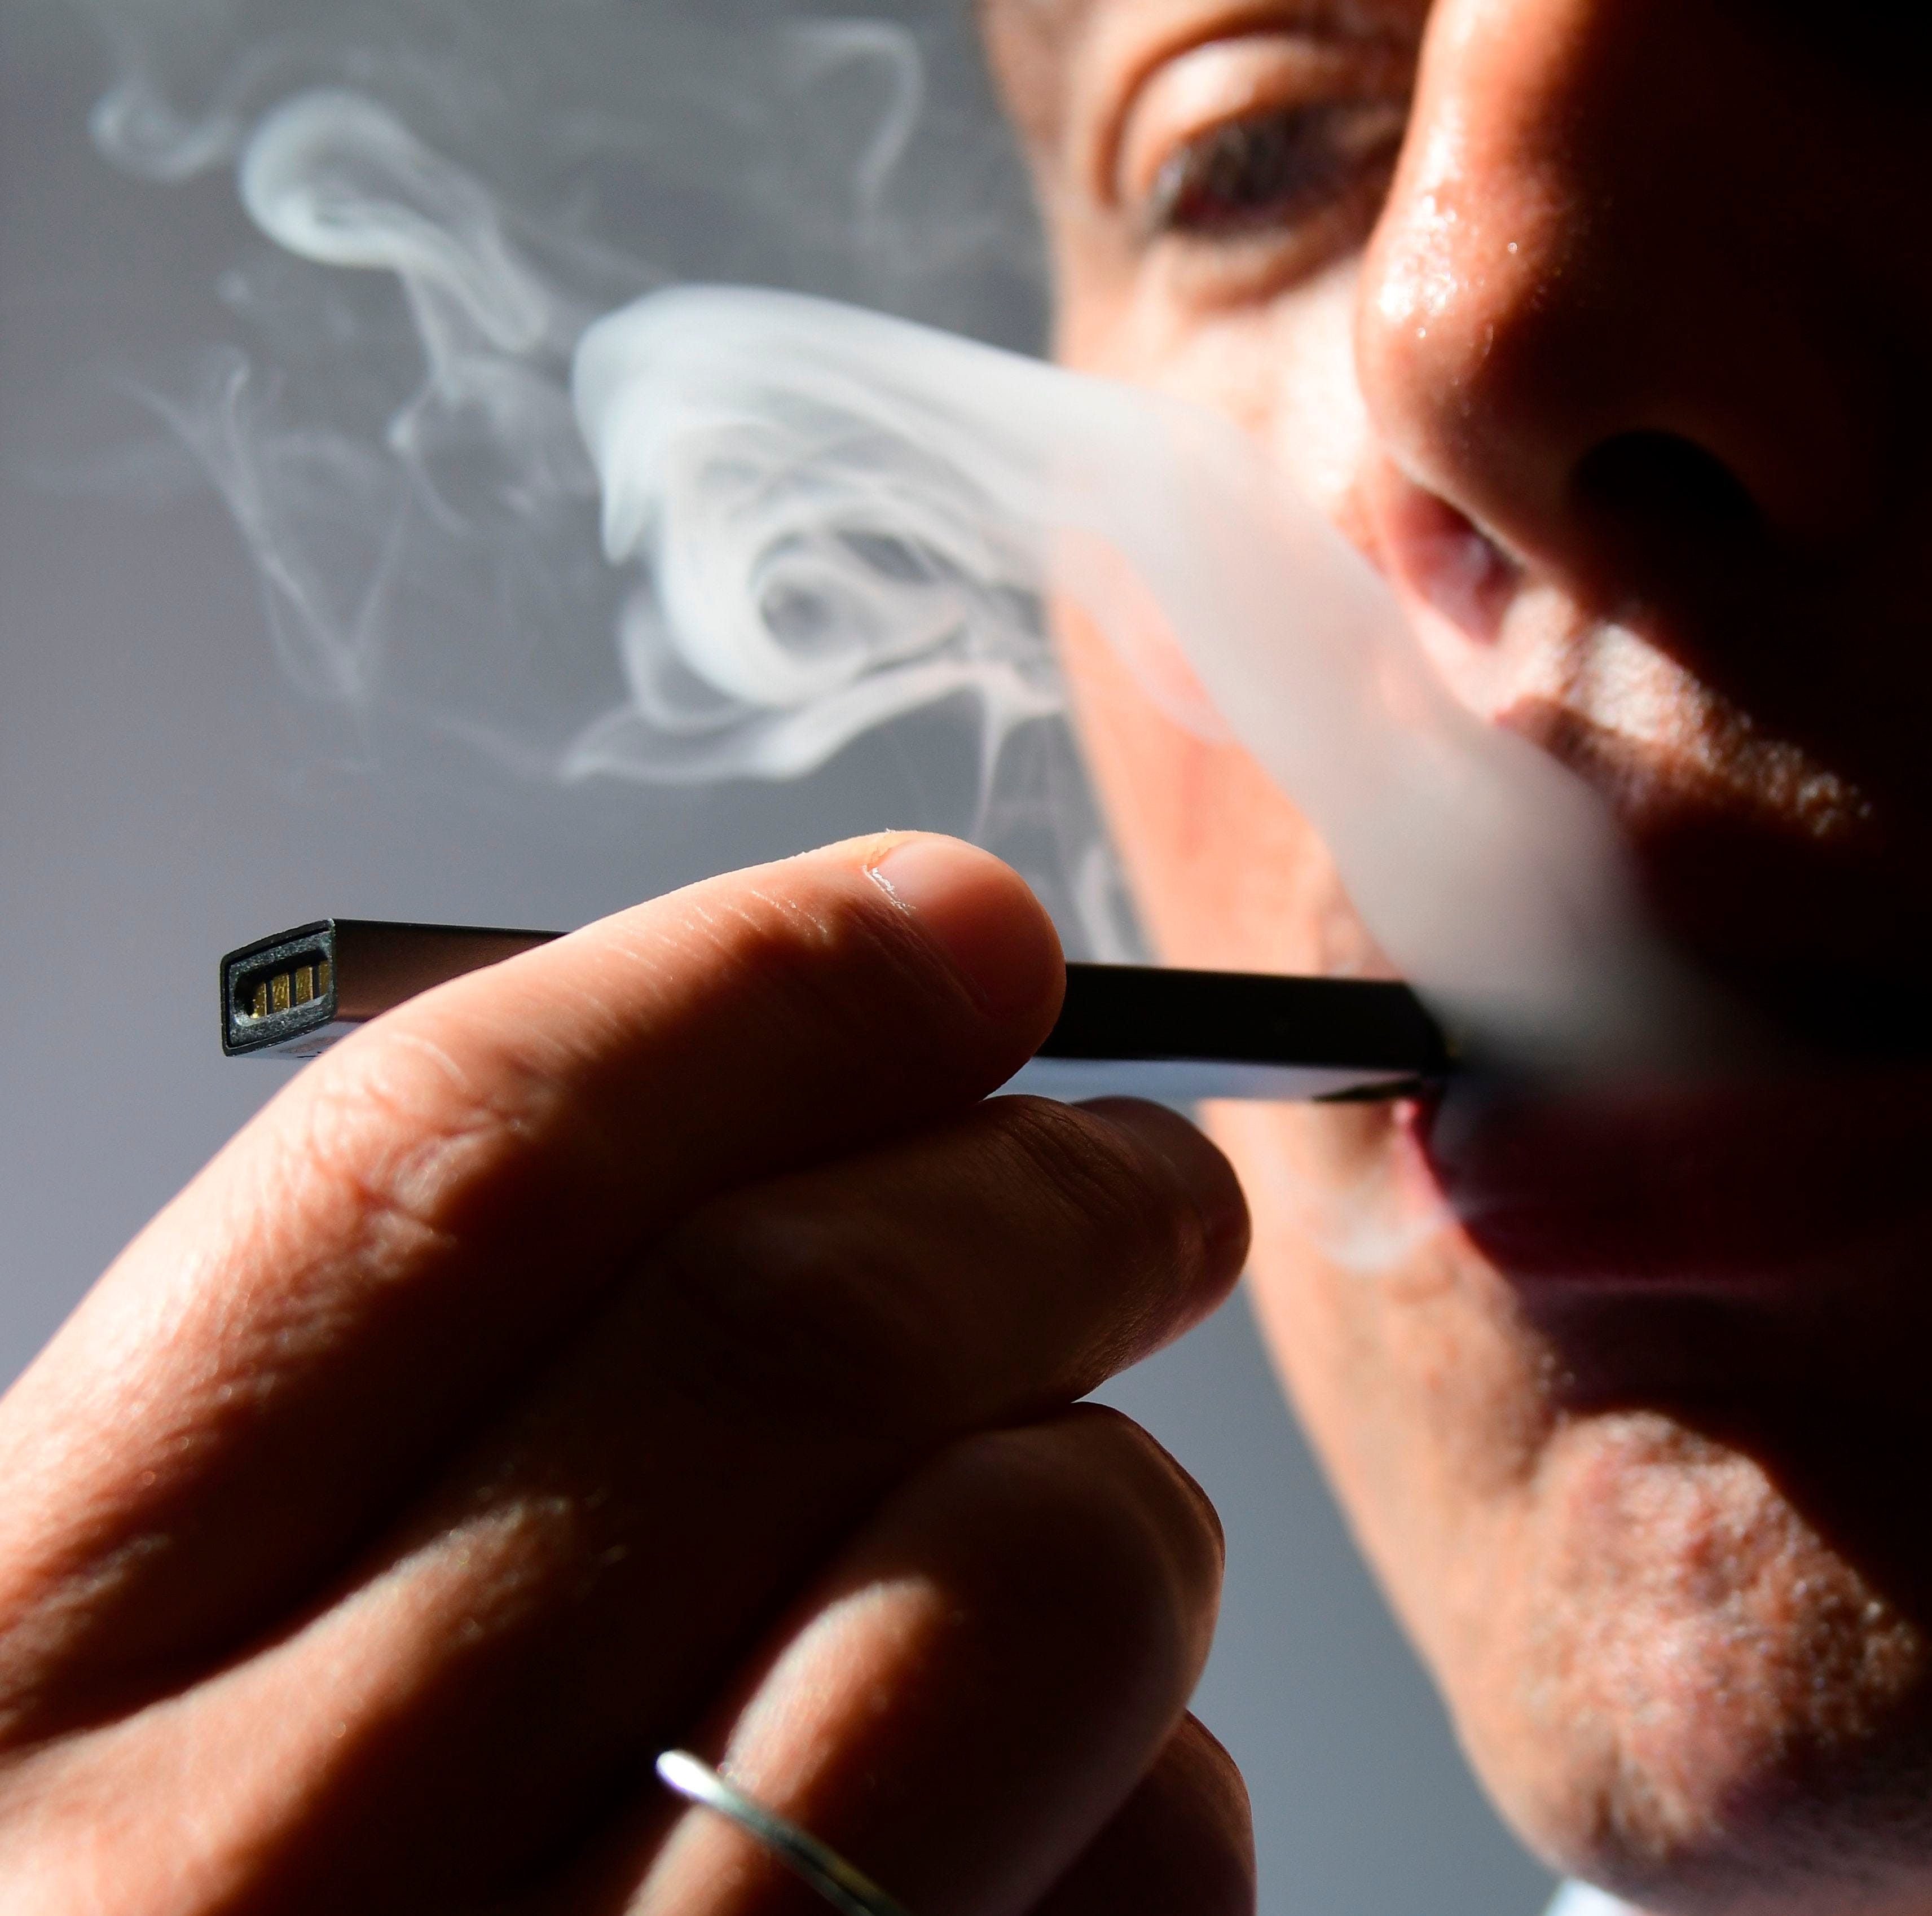 E-cigarettes are much safer than smoking but few know it; that's a public health tragedy